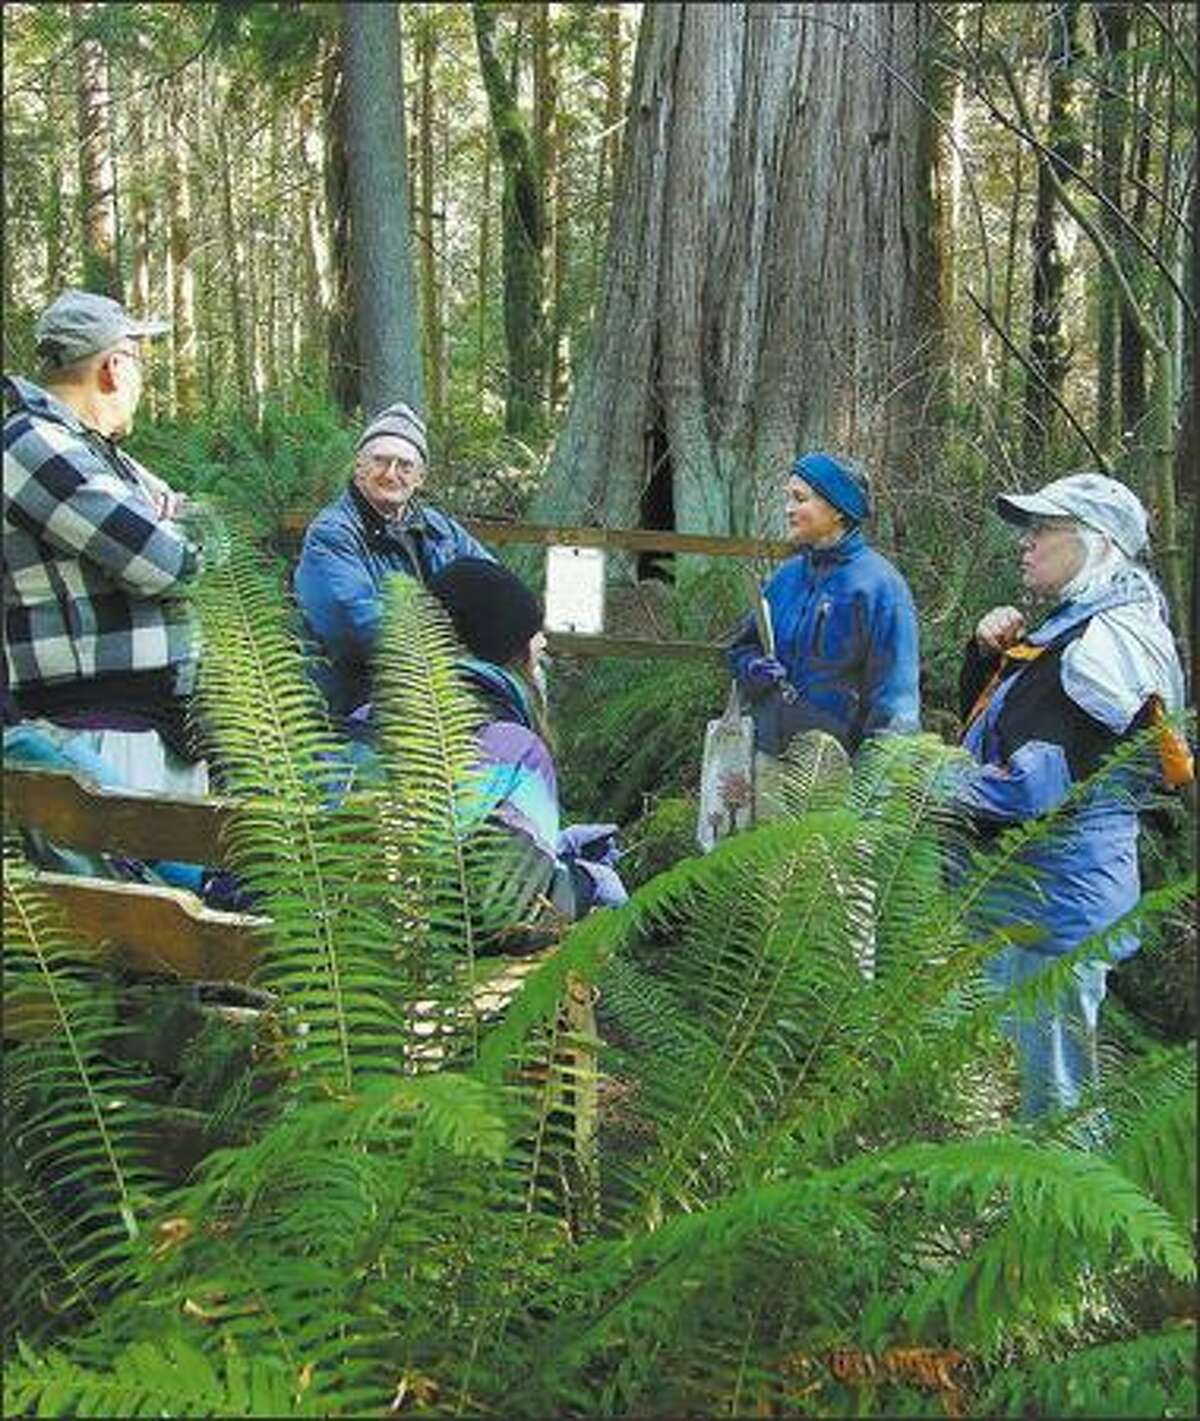 Saved by a sit-in:  Hikers pause to admire Ancient Cedar, thought to be at least 500 years old, in the old-growth forest of South Whidbey State Park, which contains the largest chunk of old growth on southern Whidbey Island.